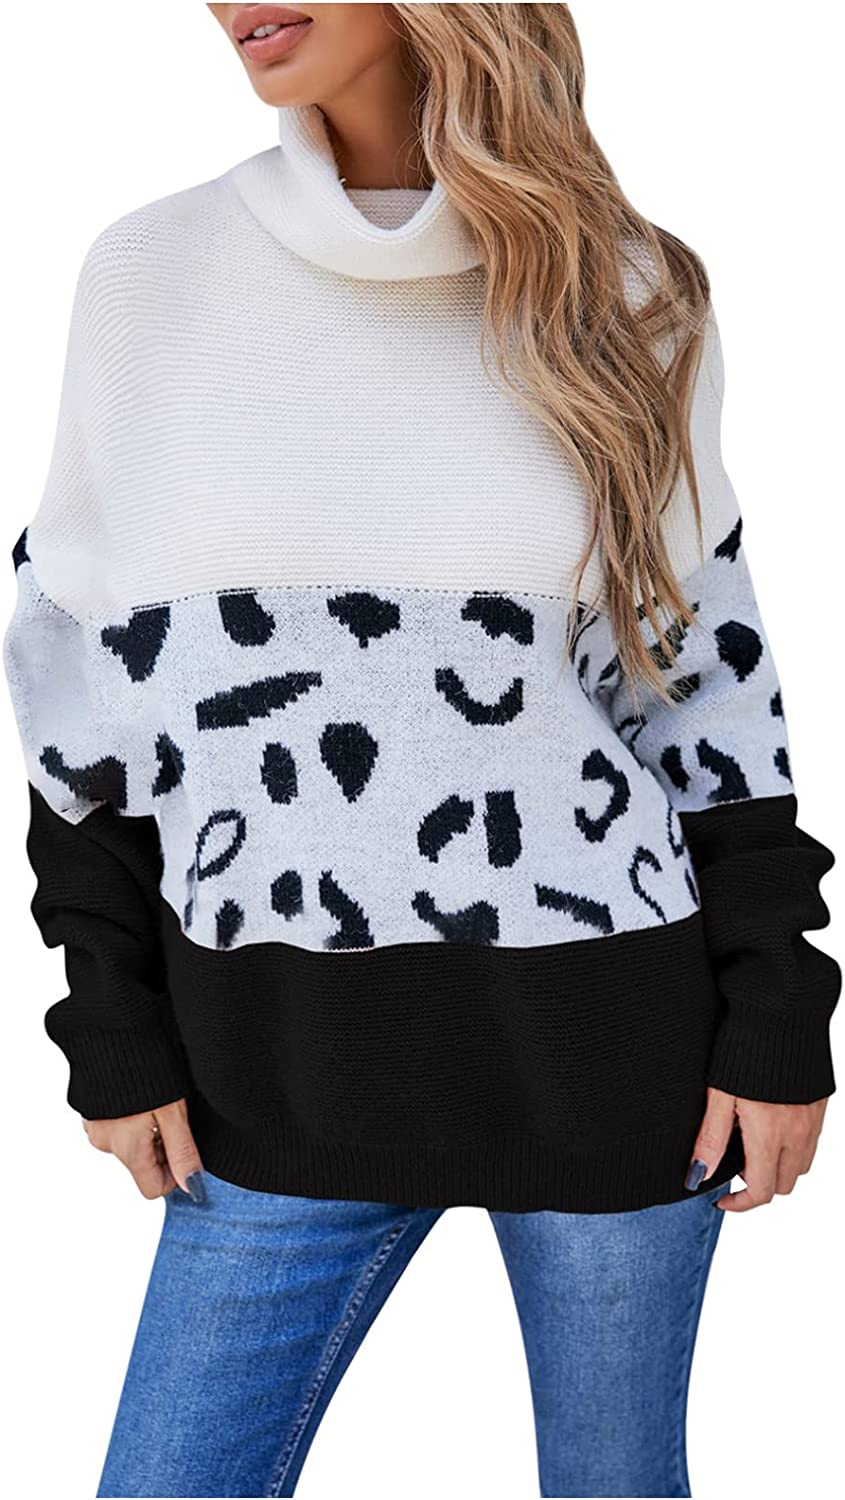 Fashion Pullover Sweater Women Leopard Bow Collar Solid Button Knitted Casual Long Sleeve Warm Top